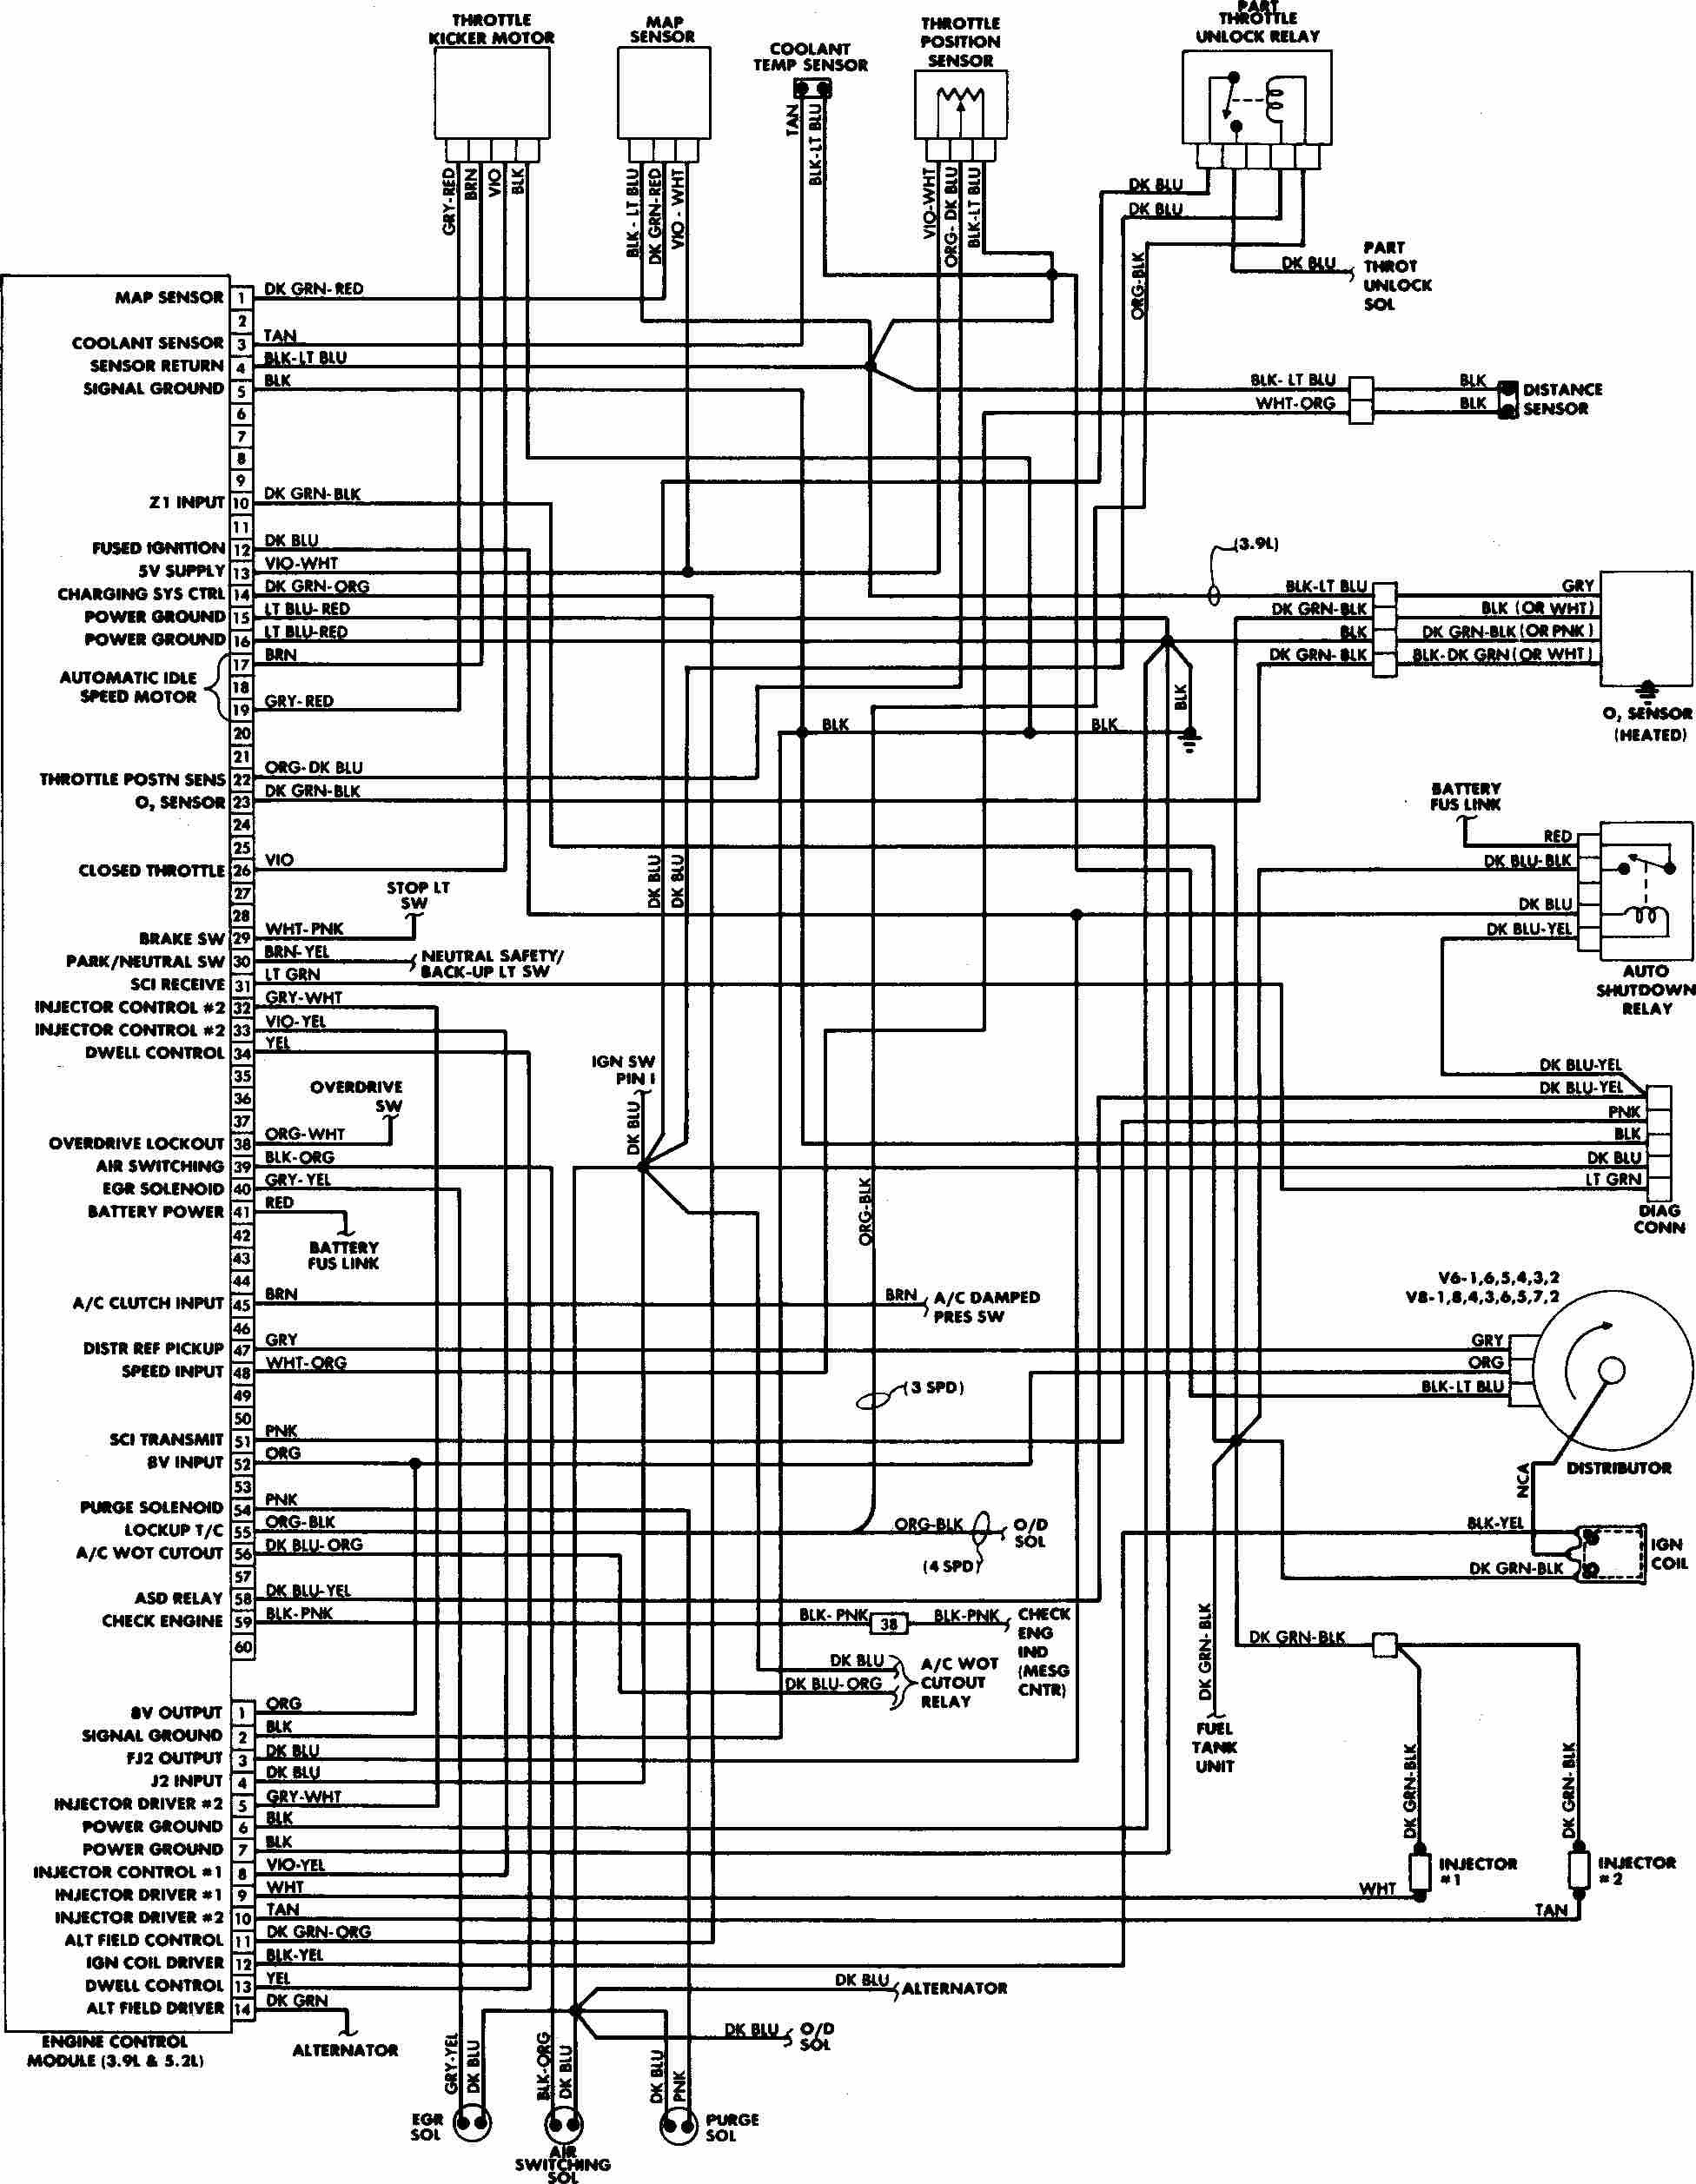 97 dodge ram trailer wiring diagram free picture 1989 dodge ram 50 wiring diagram free picture 2014 dodge ram wiring diagram | free wiring diagram